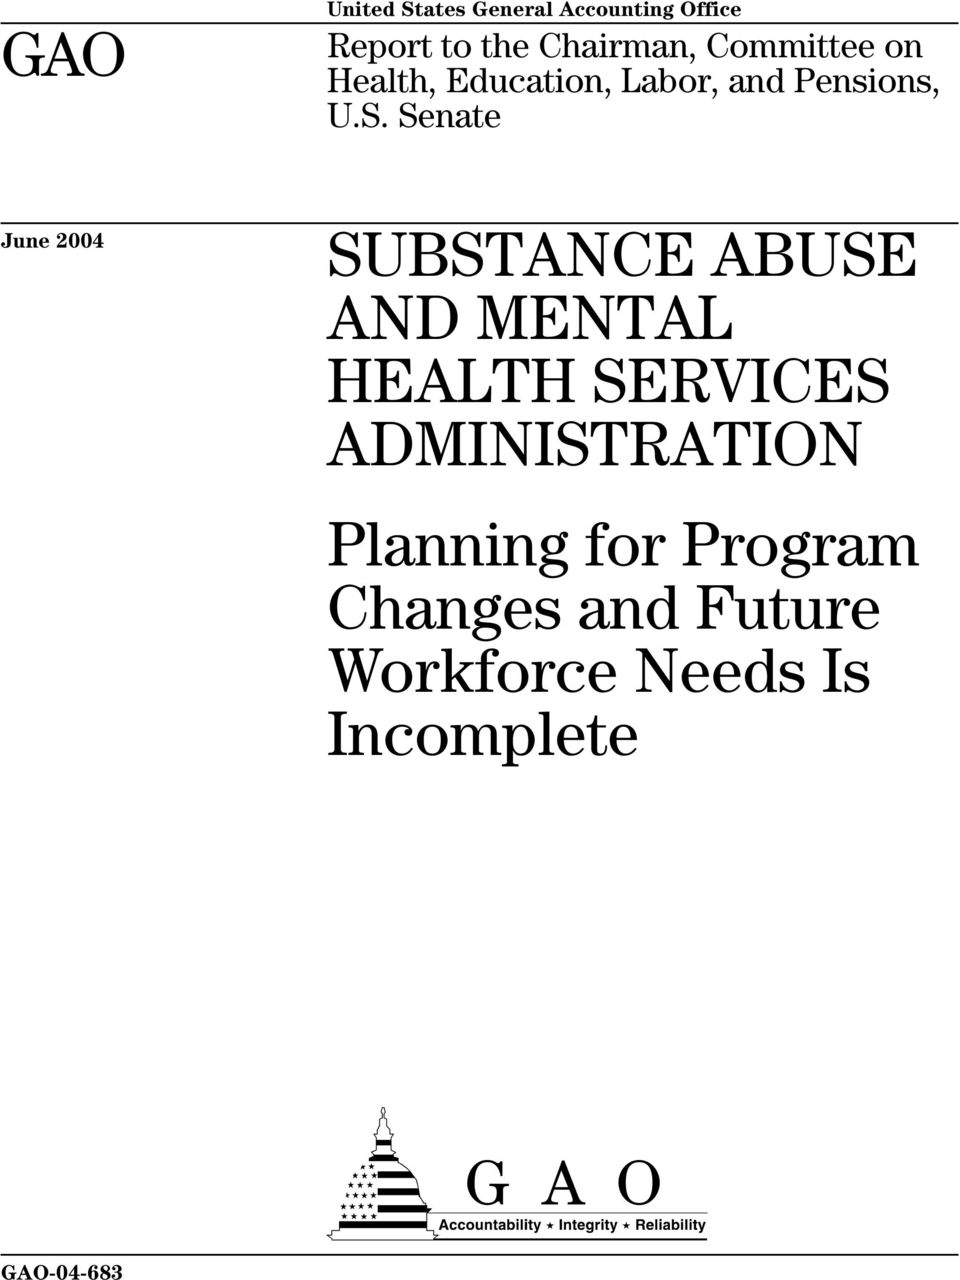 Senate June 2004 SUBSTANCE ABUSE AND MENTAL HEALTH SERVICES